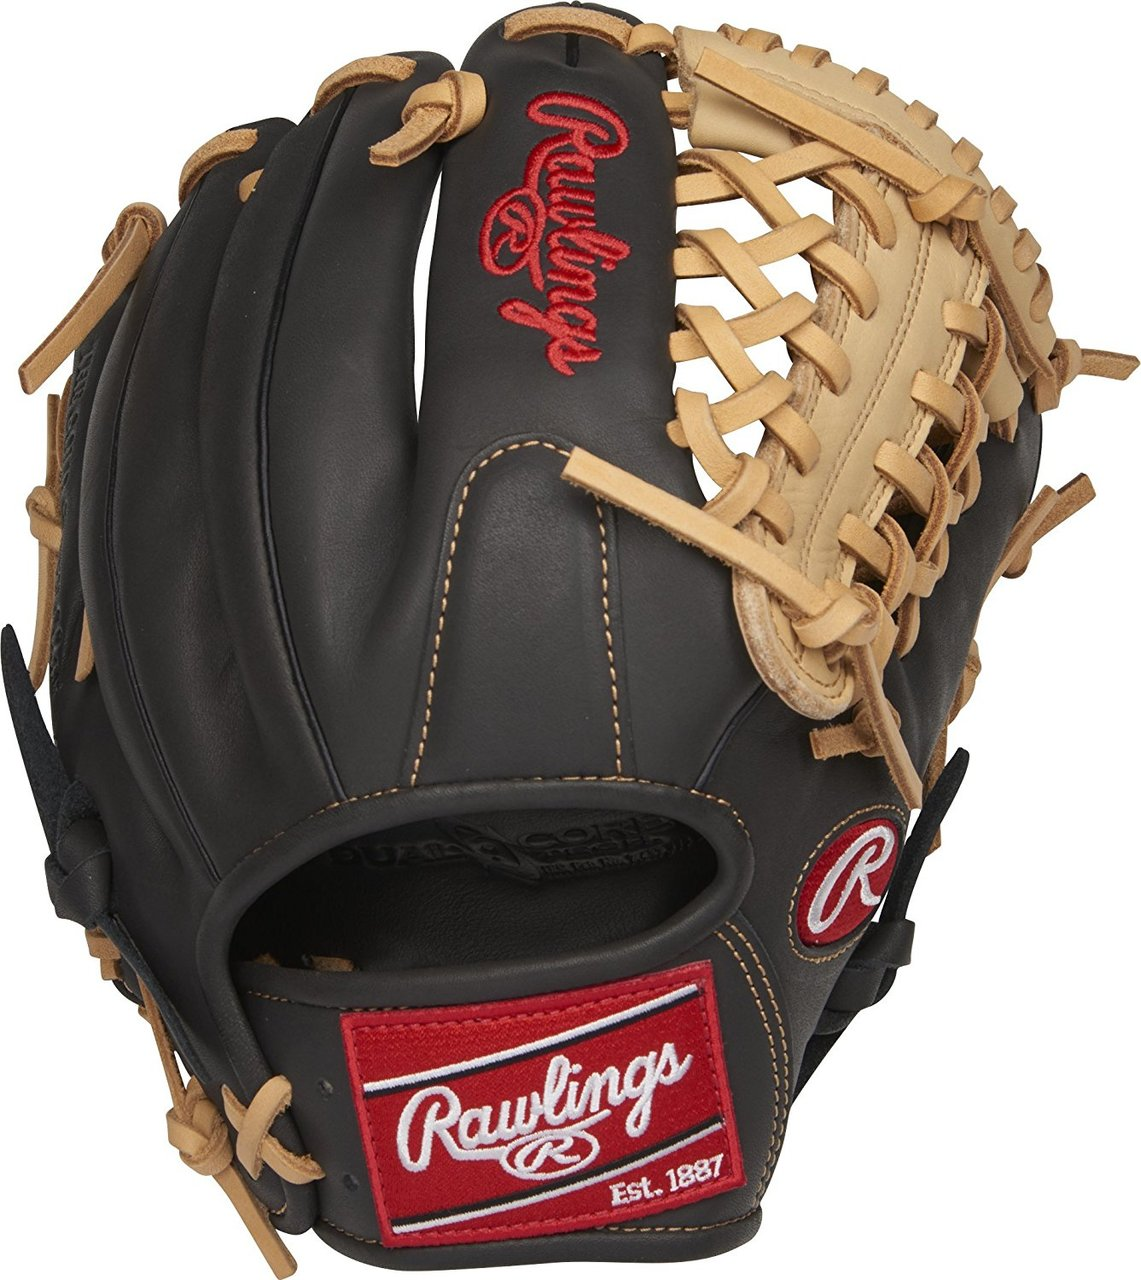 rawlings-gamer-xle-gxle204-4dsc-basball-glove-11-5-right-hand-throw GXLE204-4DSC-RightHandThrow Rawlings 083321369070 Add some color to your game with a Gamer™ XLE glove!